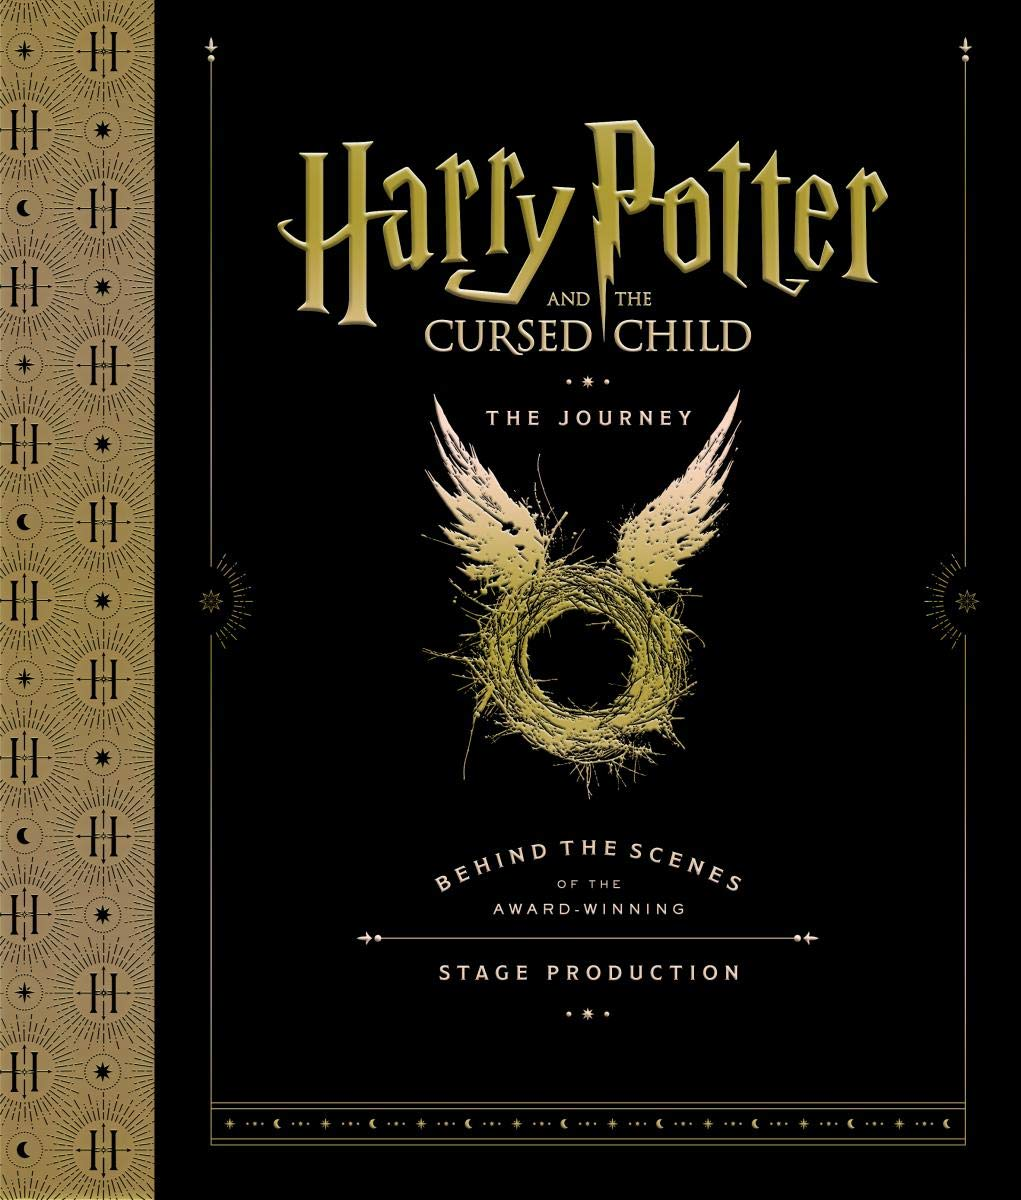 Harry Potter And The Cursed Child  The Journey  Behind The Scenes Of The Award Winning Stage Production